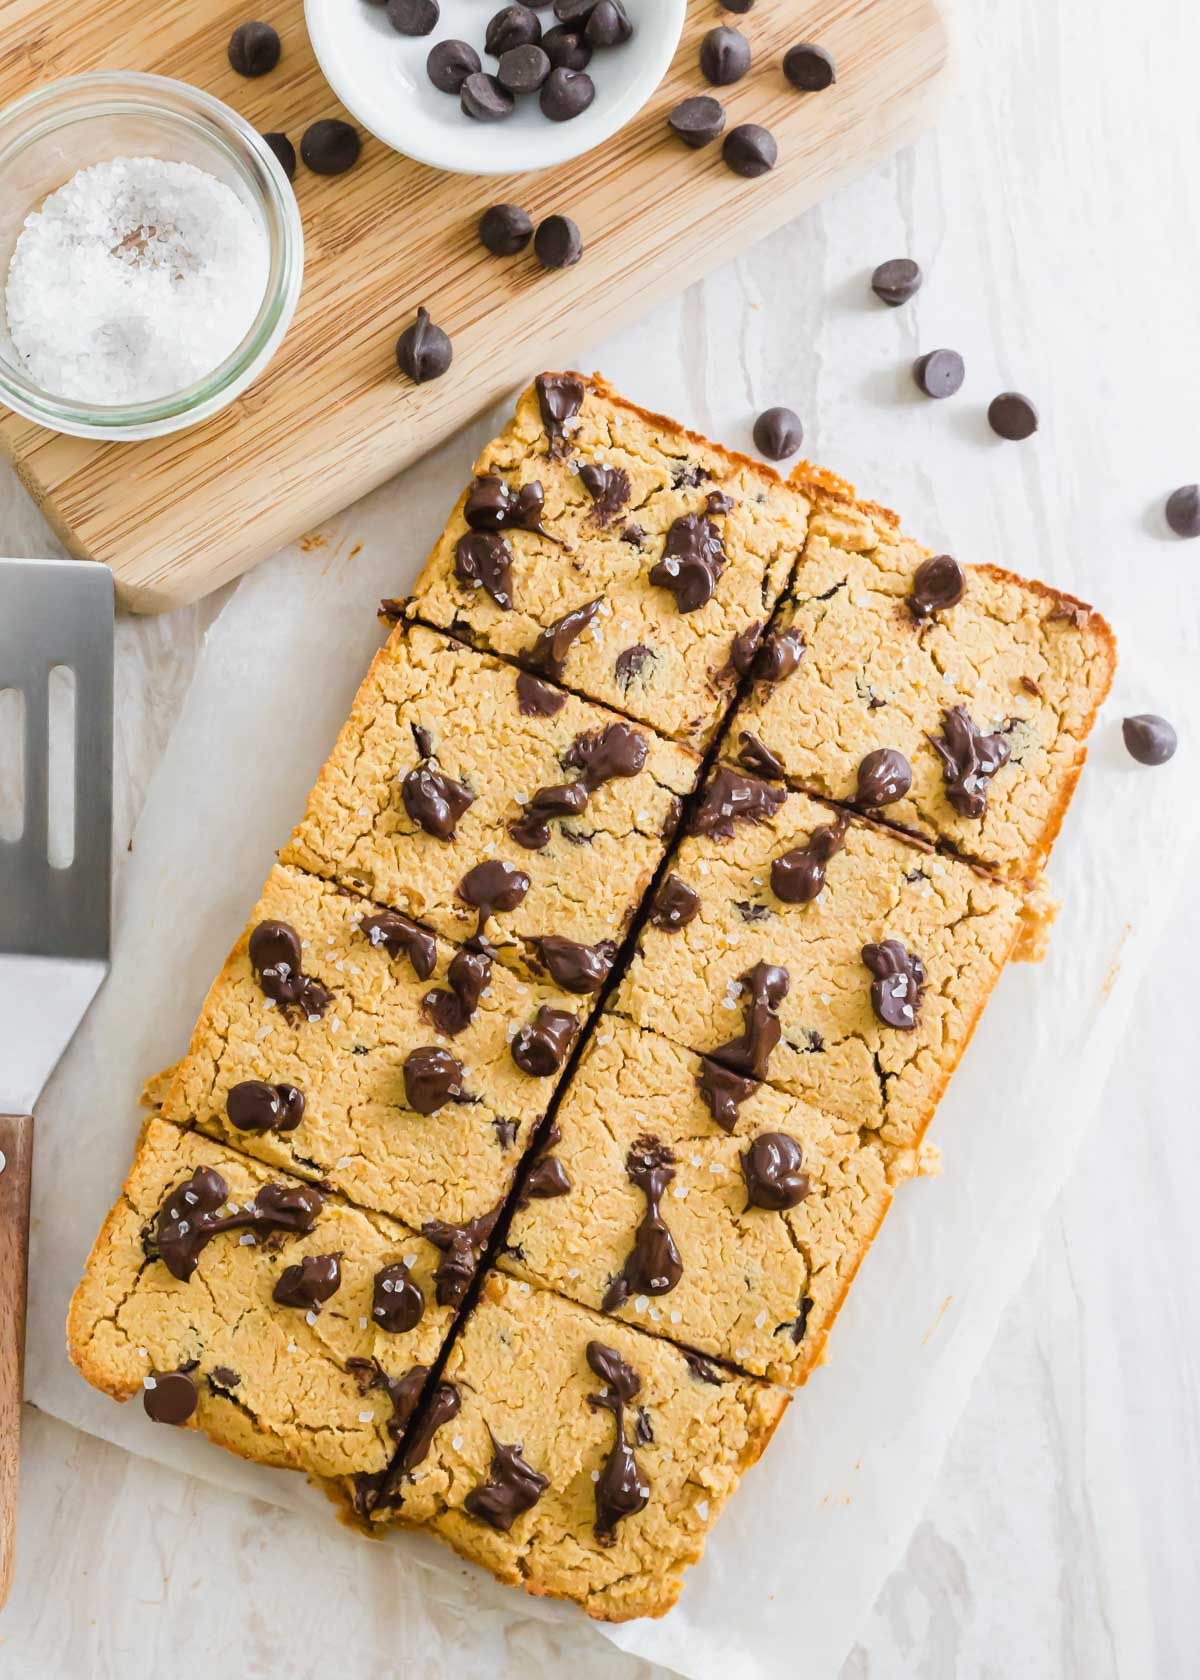 Baked chickpea blondies cut into 8 bars and sprinkled with flaky sea salt.